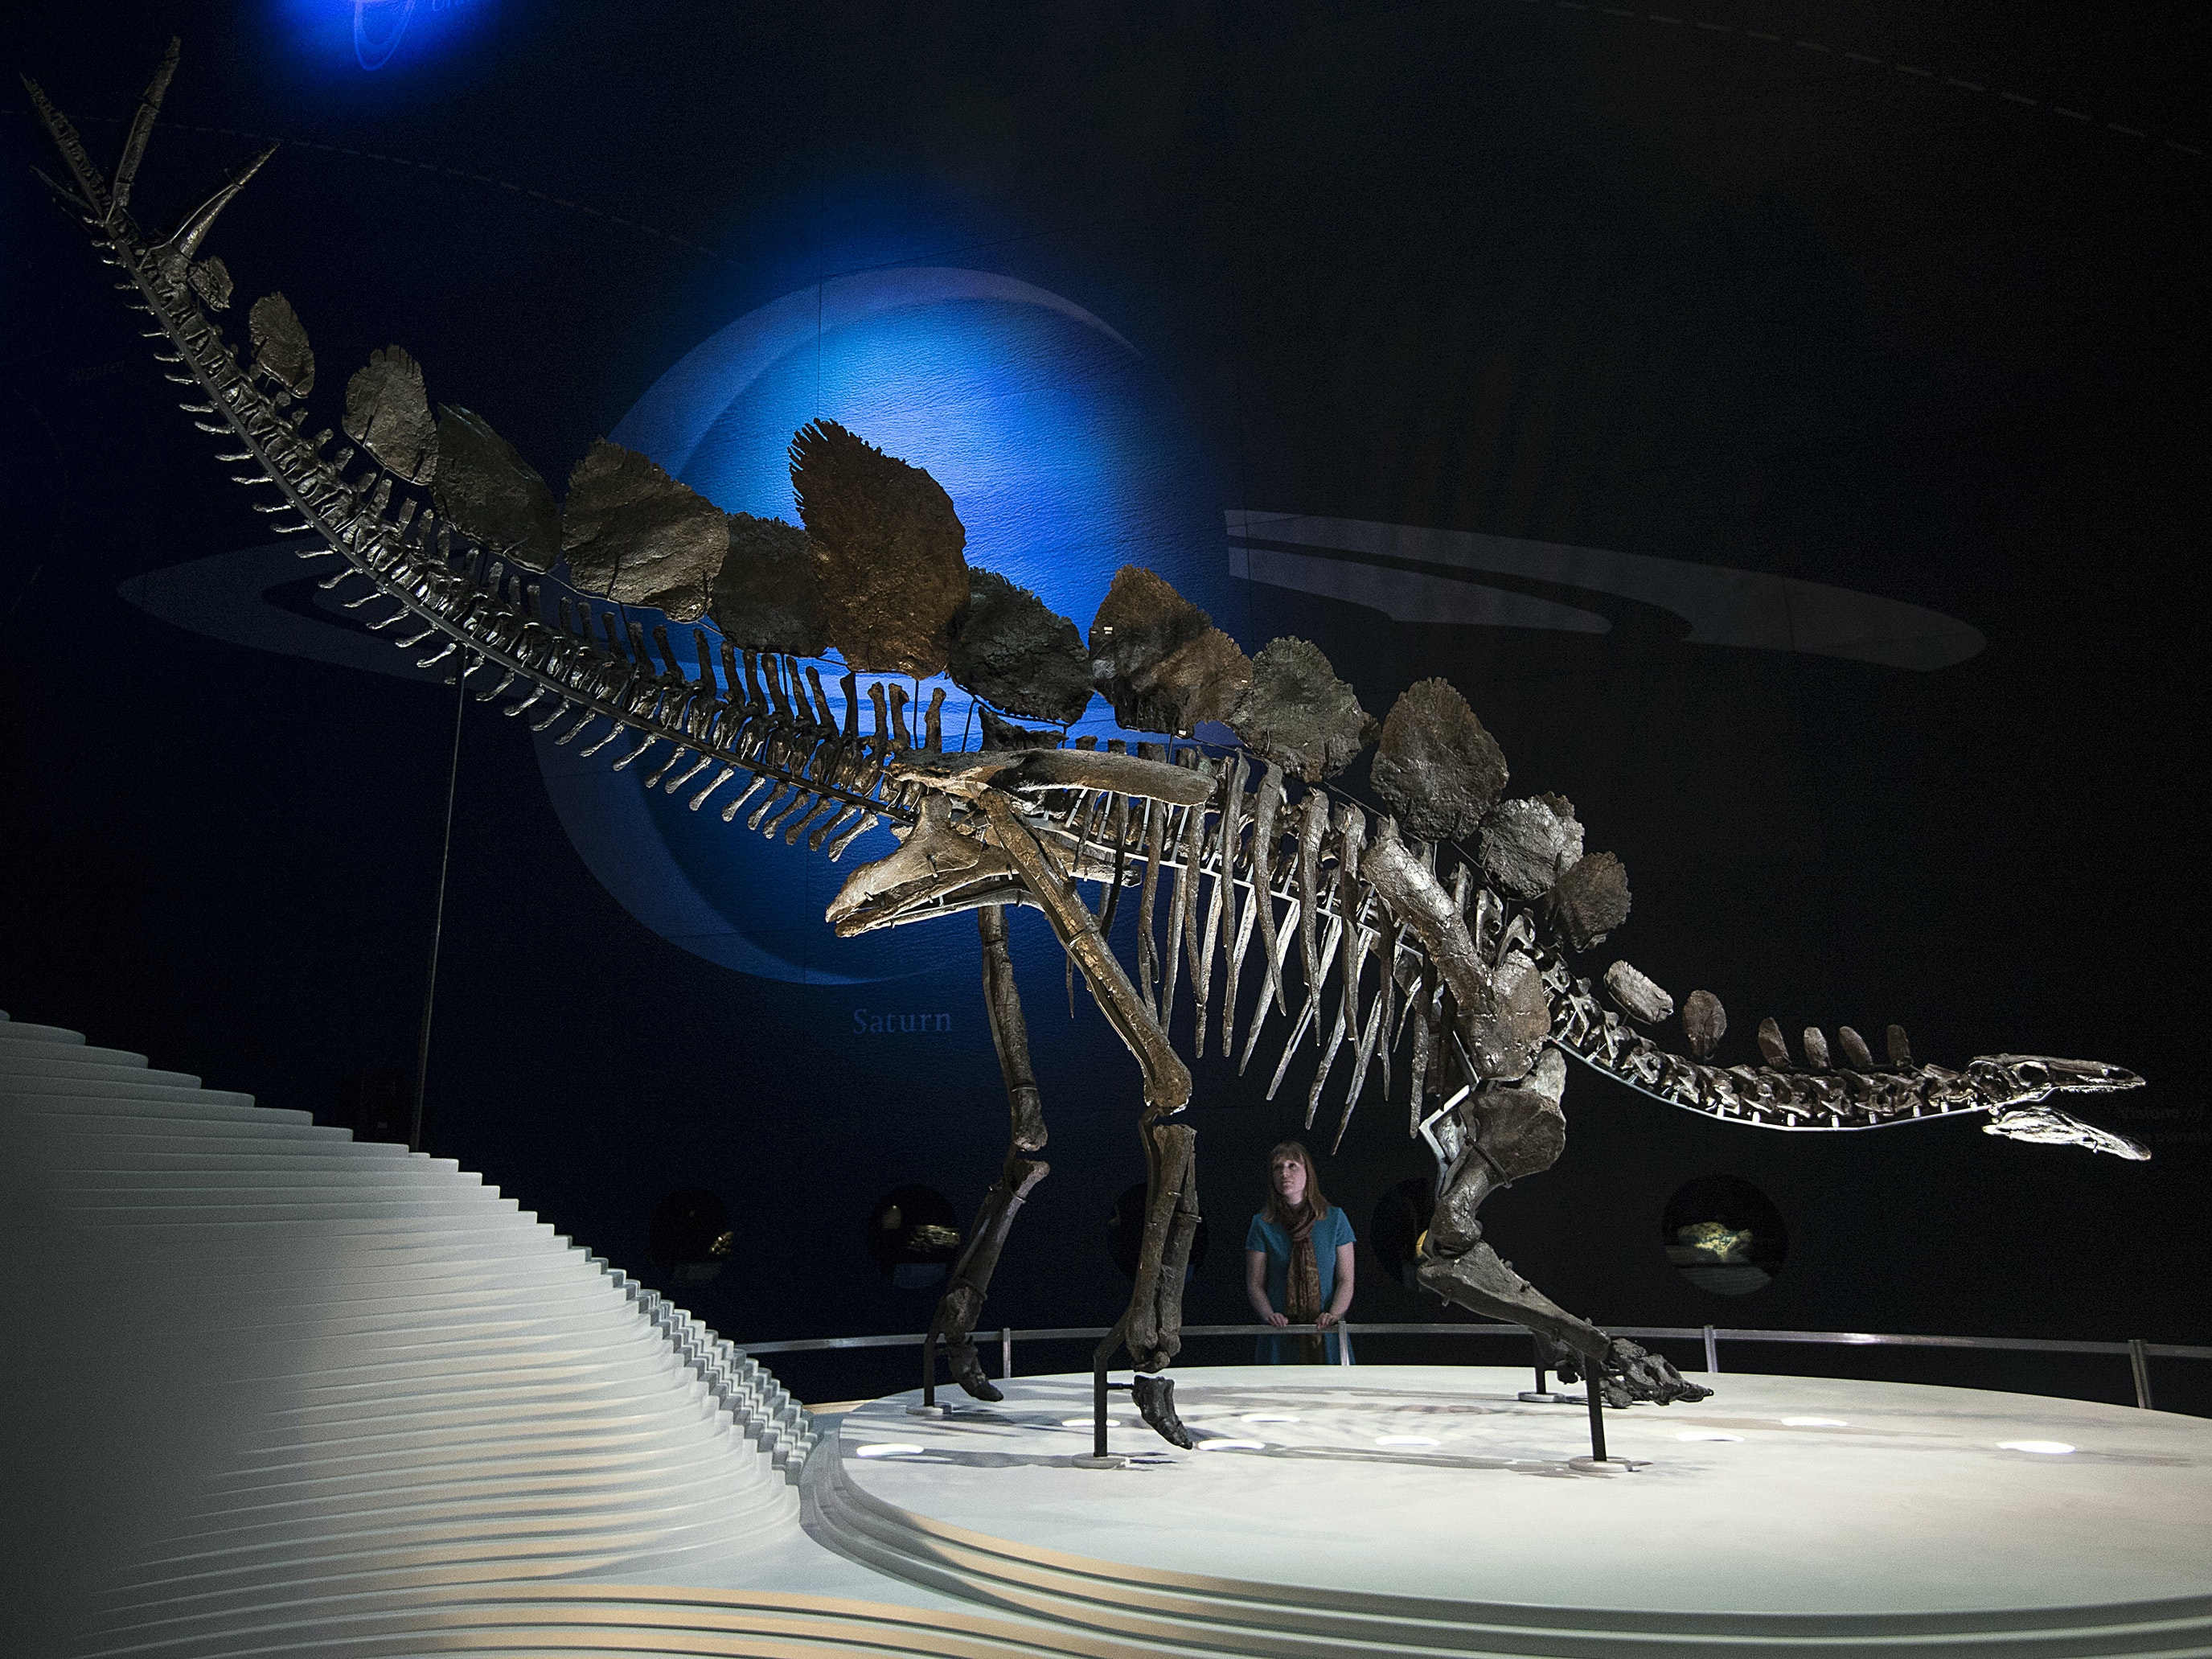 LONDON, ENGLAND - DECEMBER 03:  A view of the world's most complete Stegosaurus fossil as it is unveiled at a press preview at the Natural History Museum on December 3, 2014 in London, England. The skeleton is 560 centimetres long, 290 centimetres tall, has over 300 bones and is the first complete dinosaur specimen to go on display at the Natural History Museum in nearly 100 years. (Photo by Carl Court/Getty Images)